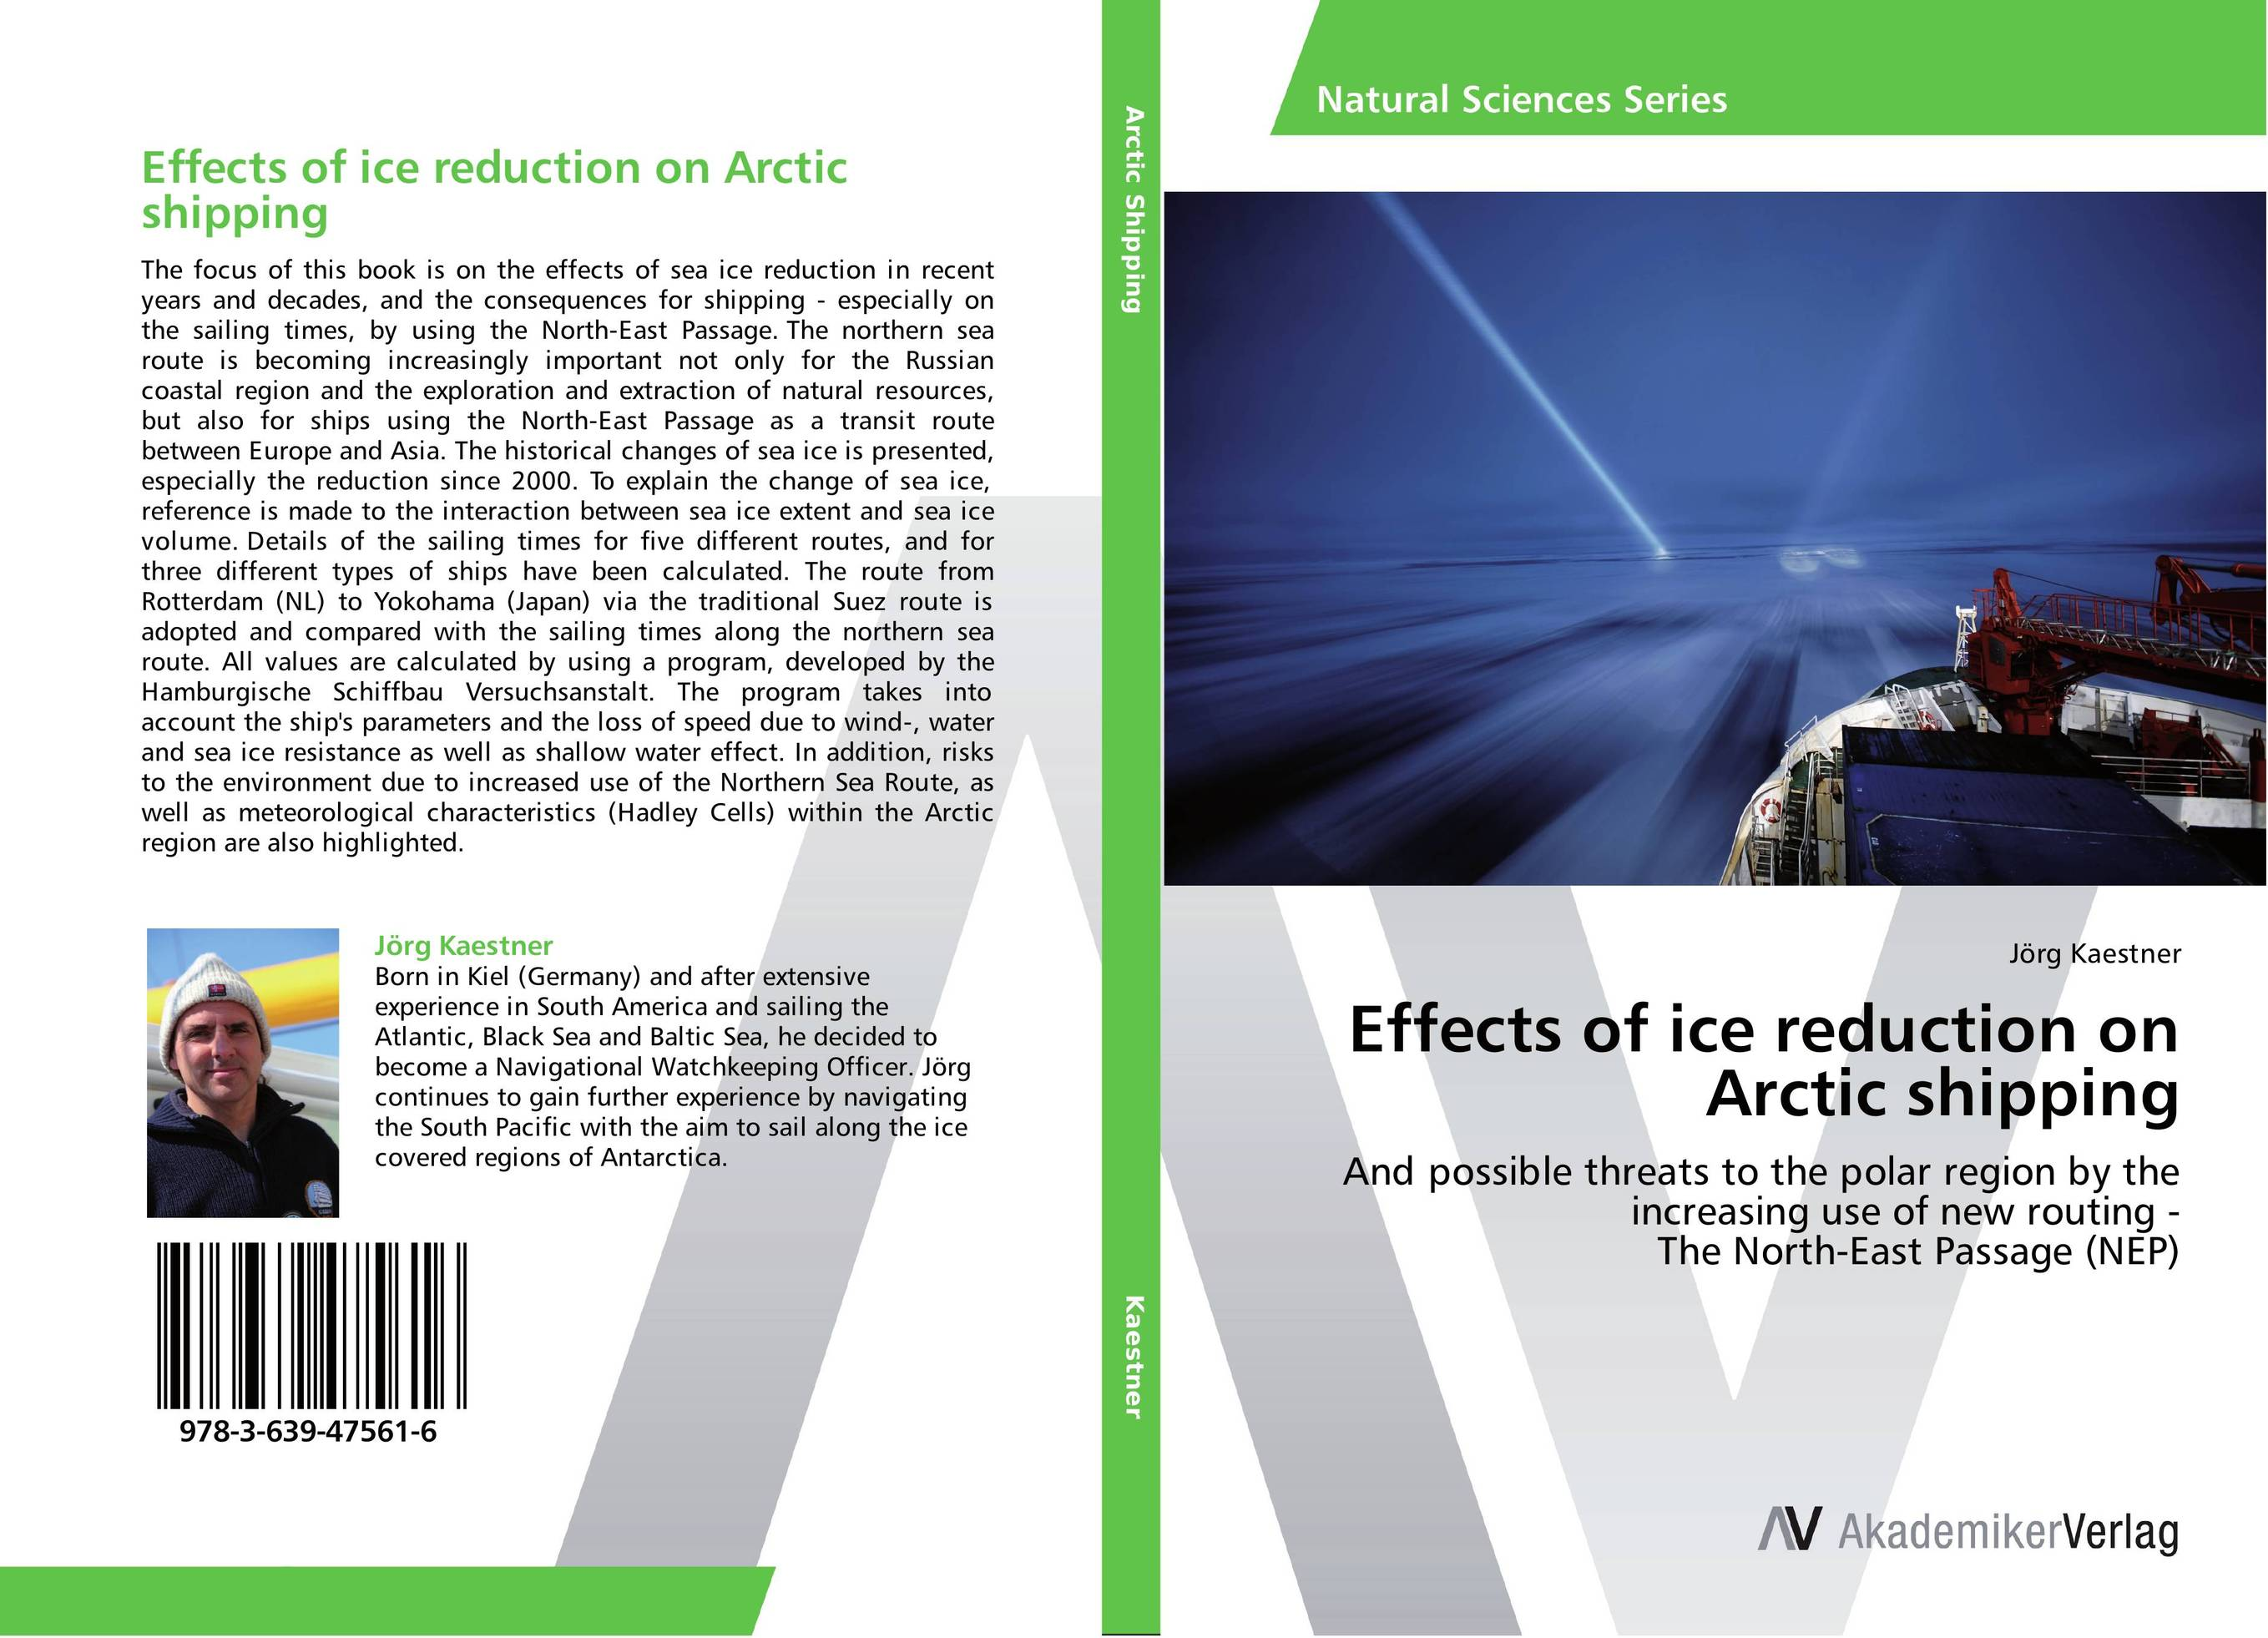 Effects of ice reduction on Arctic shipping tales of the amber sea